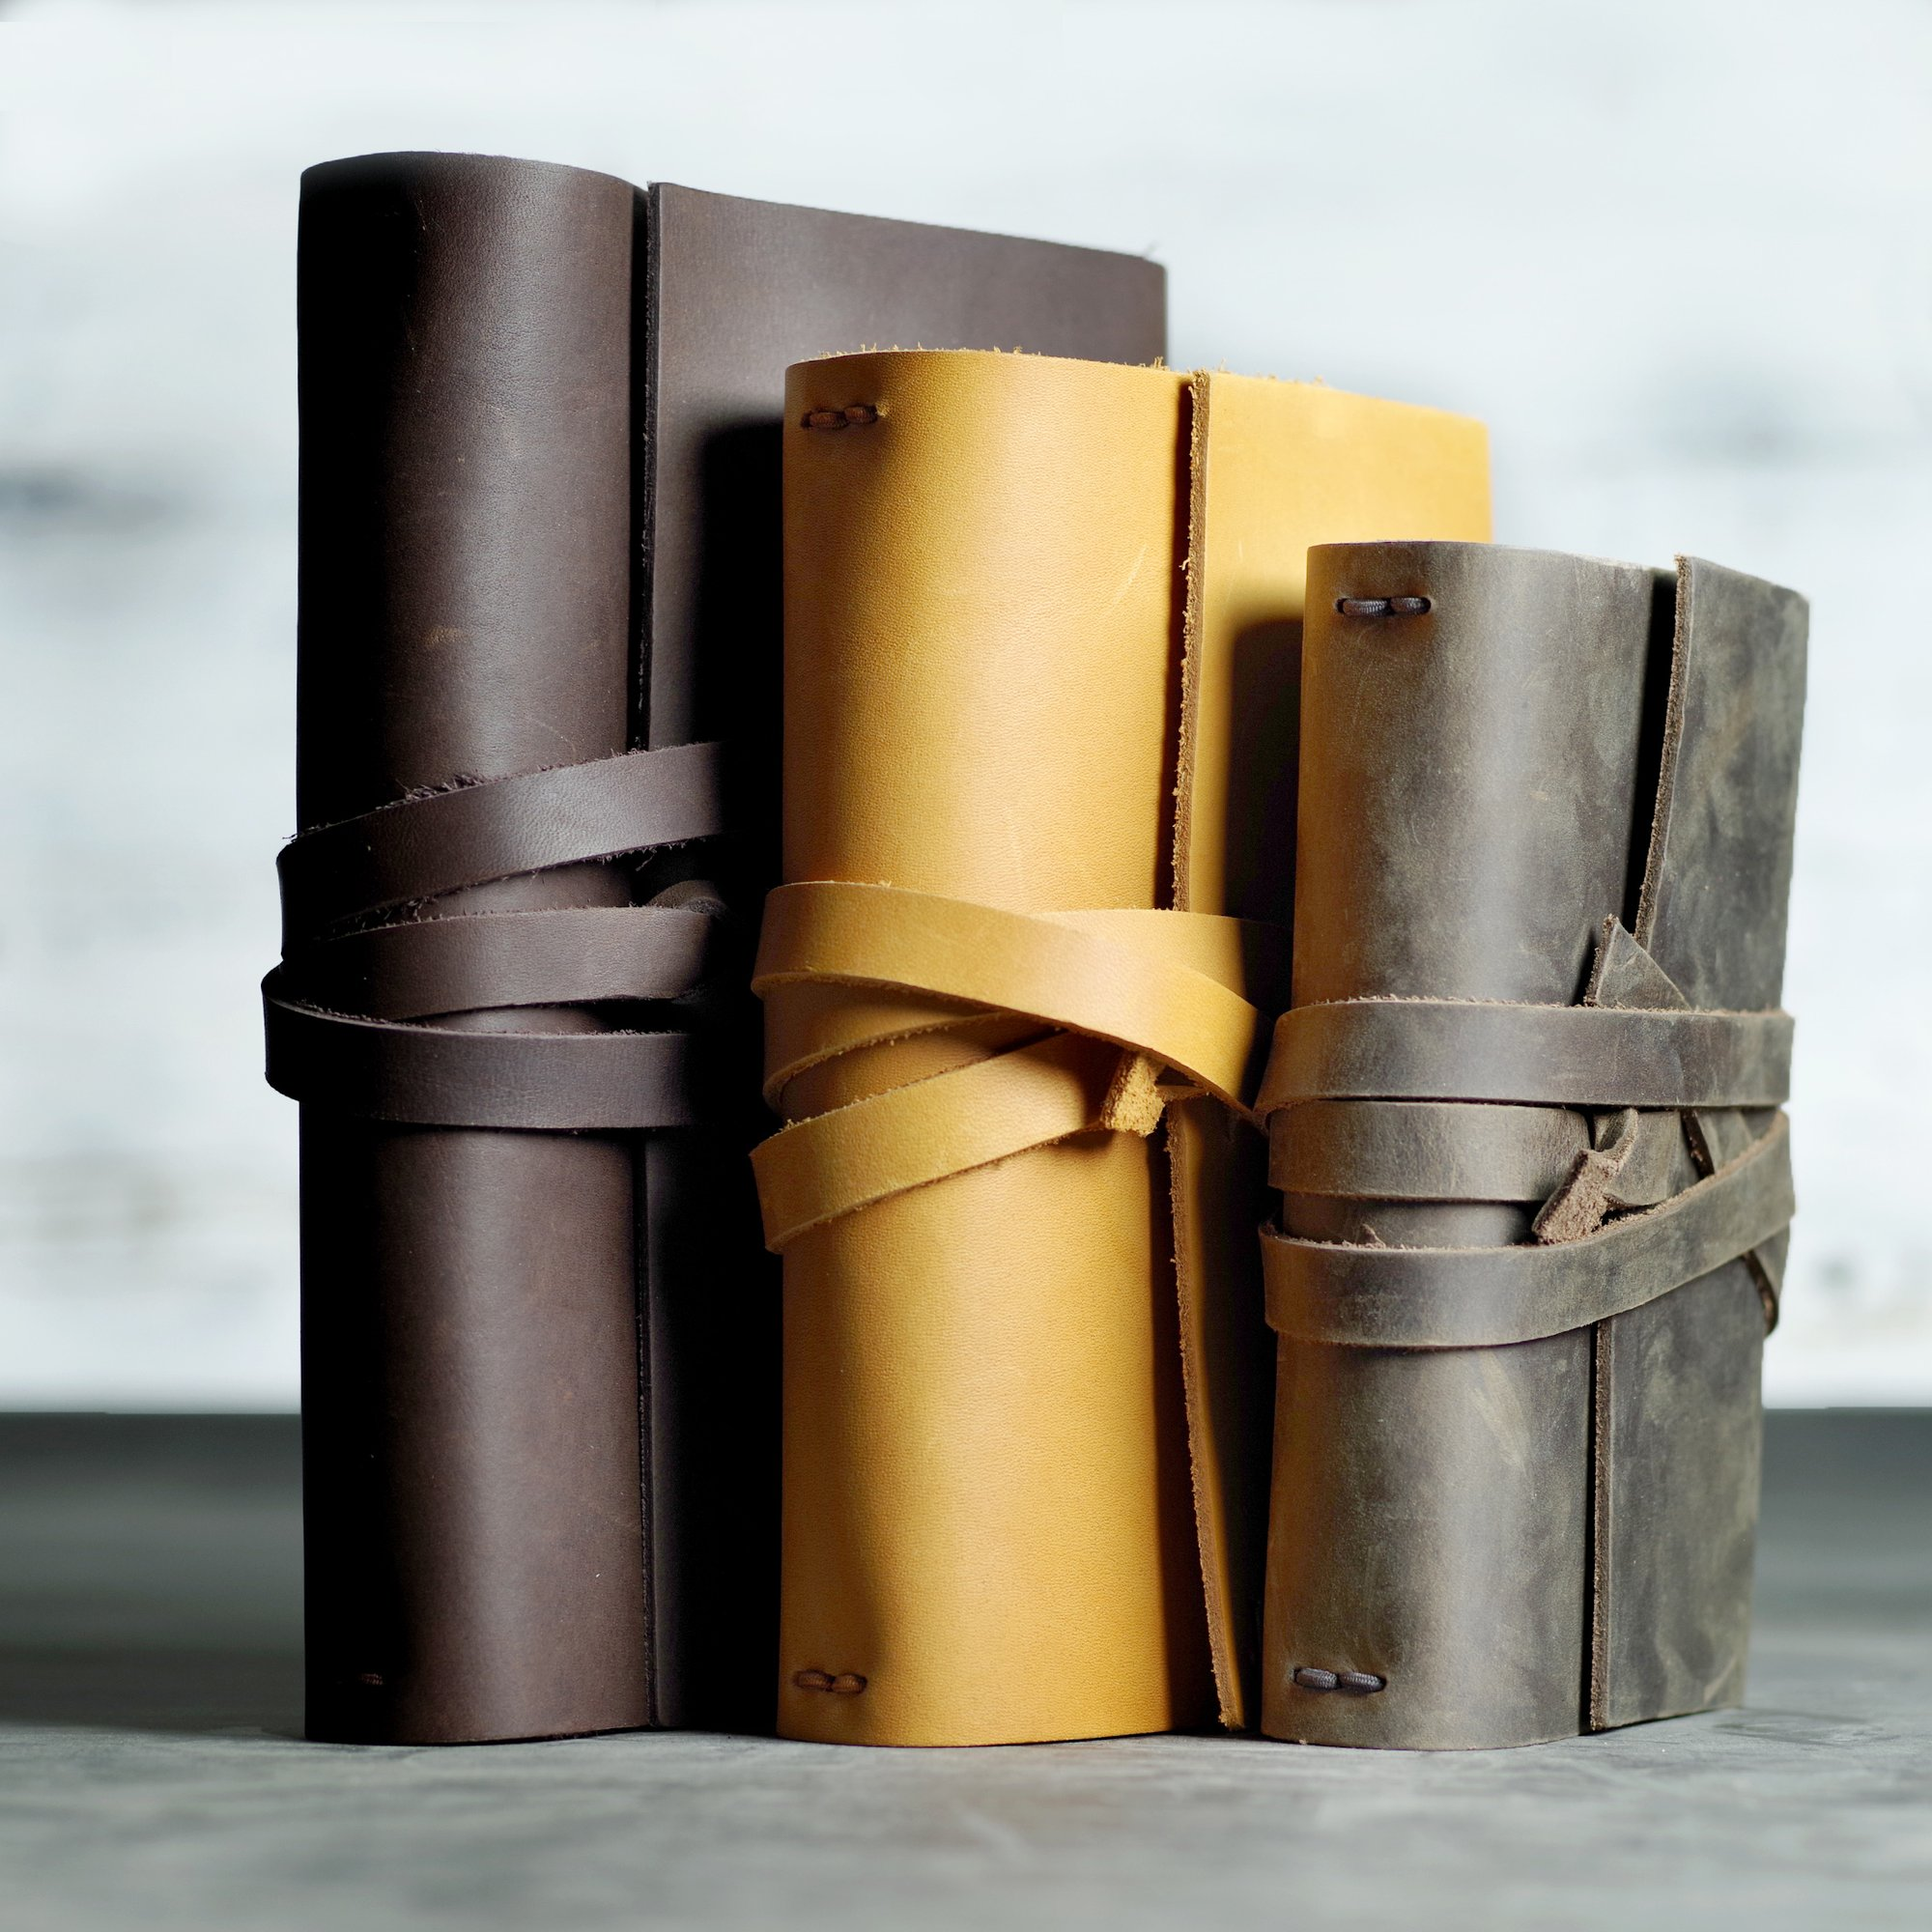 Professors and students will love these stylish, refillable leather journals by  Ox & Pine . Personalize it with initials, graduation year, or a favorite quote.